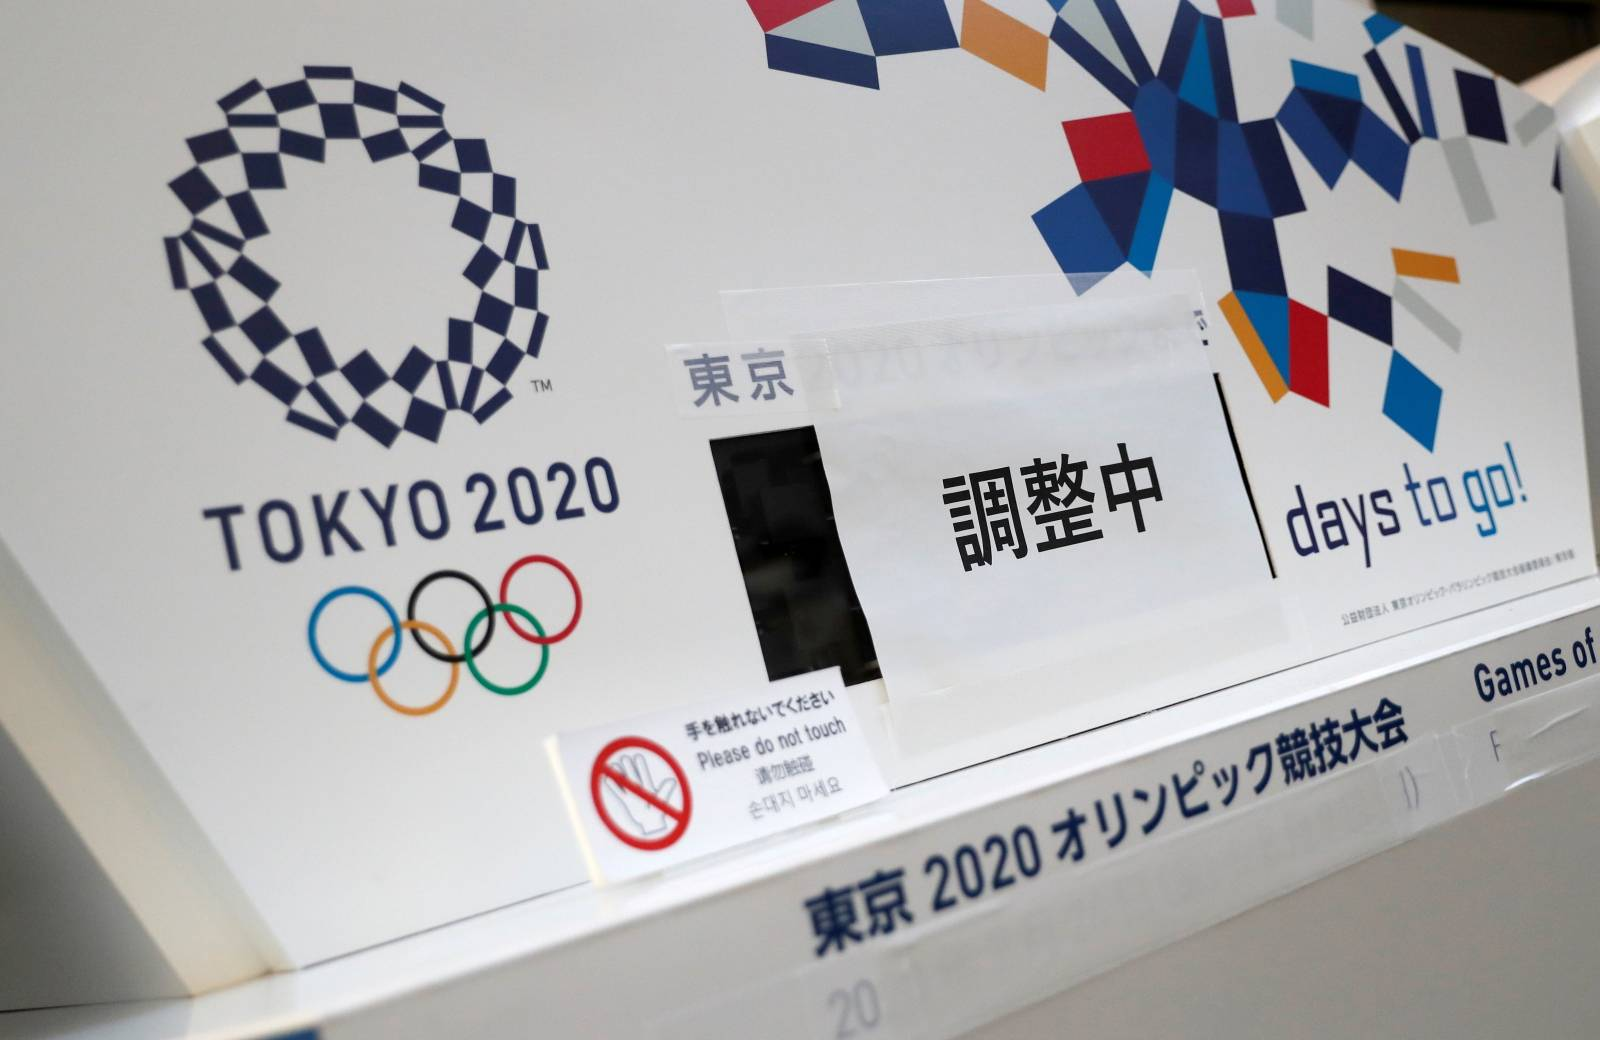 FILE PHOTO: Countdown clocks for the opening of Tokyo 2020 Olympic and Paralympic Games that are currently covered with banners that read 'Adjusting' are seen after postponing Games due to the outbreak of coronavirus disease (COVID 19), in Tokyo